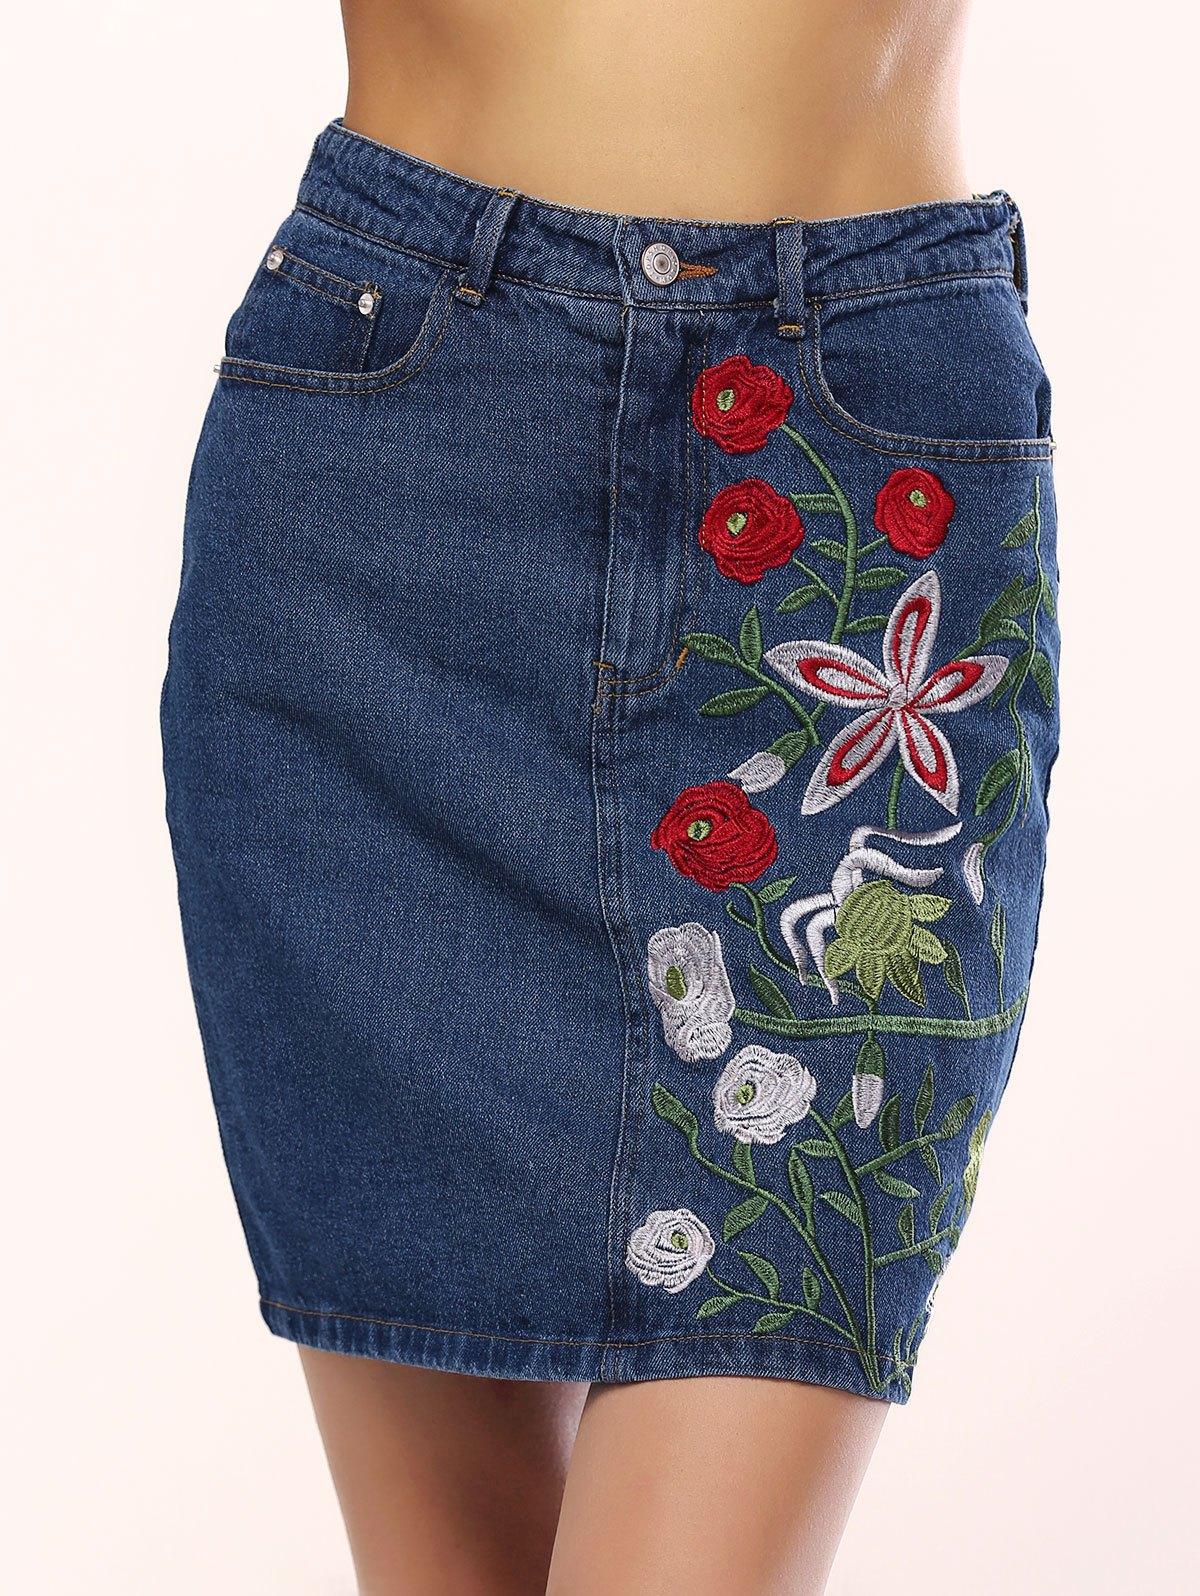 Refreshing Floral Embroidery Denim Skirt For Women